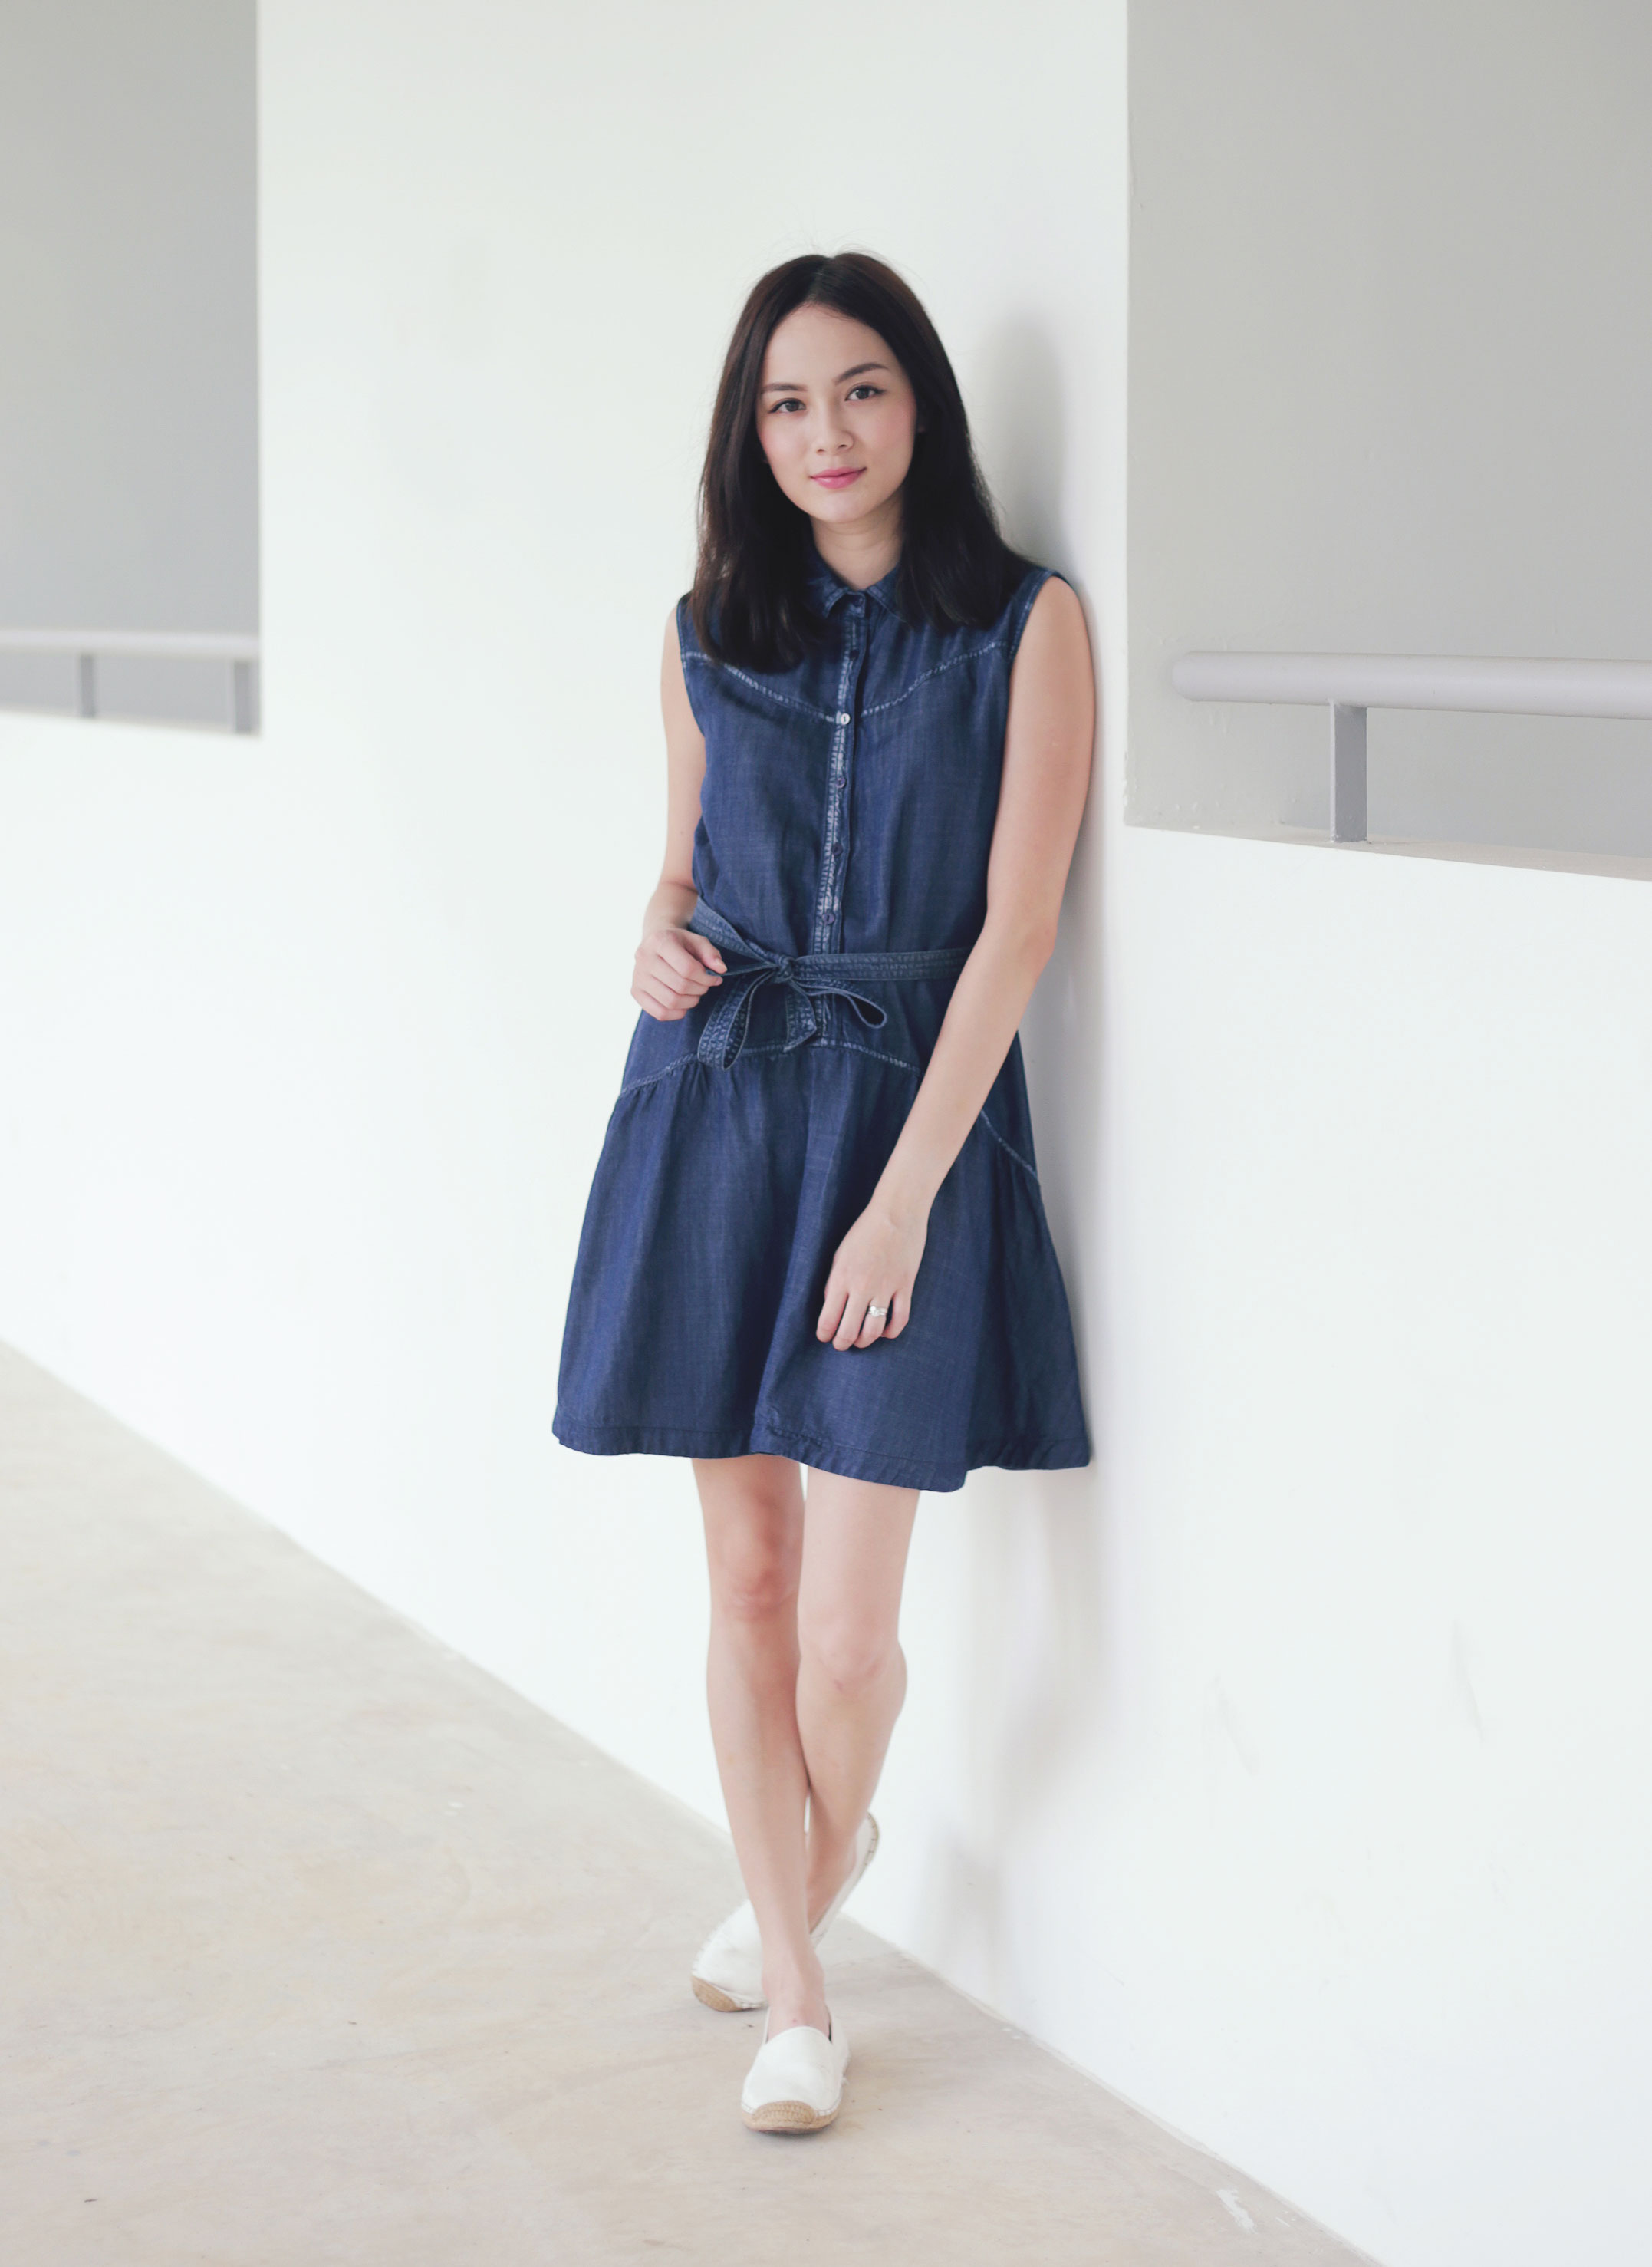 Singapore.. Latest trends in women's dresses. New models every week: short, long, party and evening dresses. Free delivery from S$79 and easy returns Rhinestone denim dress S$ S$ d d. Add Choose your size. XS S M L XL. Embroidery bead dress S$ S$ d d. Add.